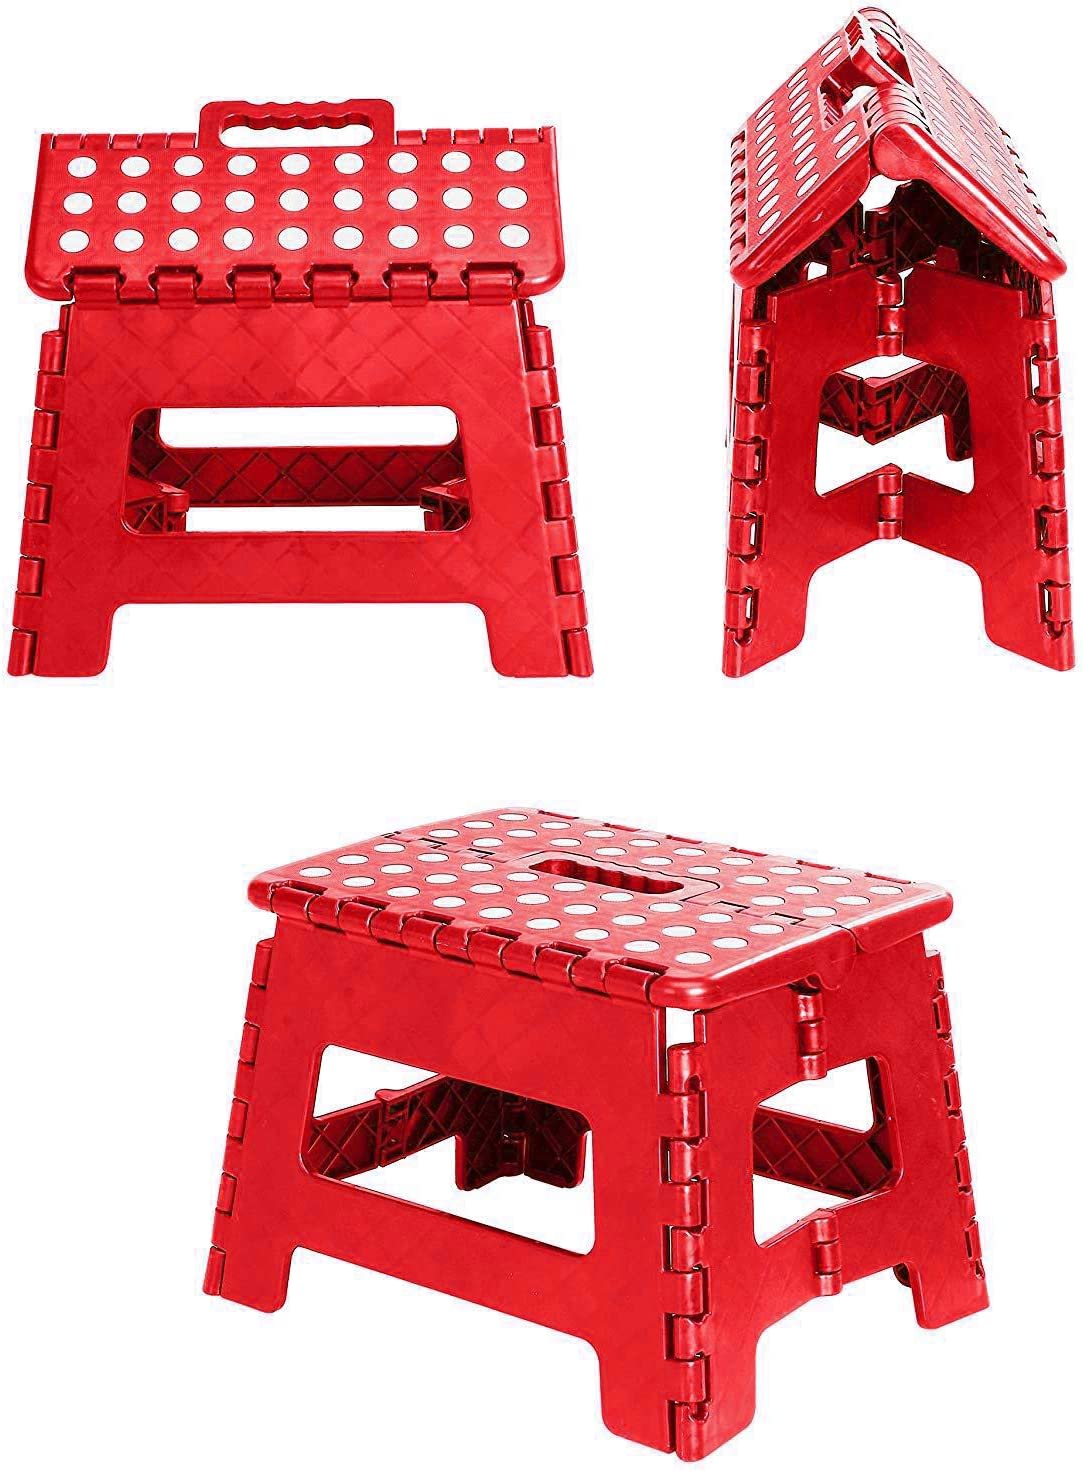 Bedroom Opens Easy with One Flip Kids or Adults. The Lightweight Step Stool is Sturdy Enough to Support Adults and Safe Enough for Kids Bathroom Great for Kitchen White Folding Step Stool